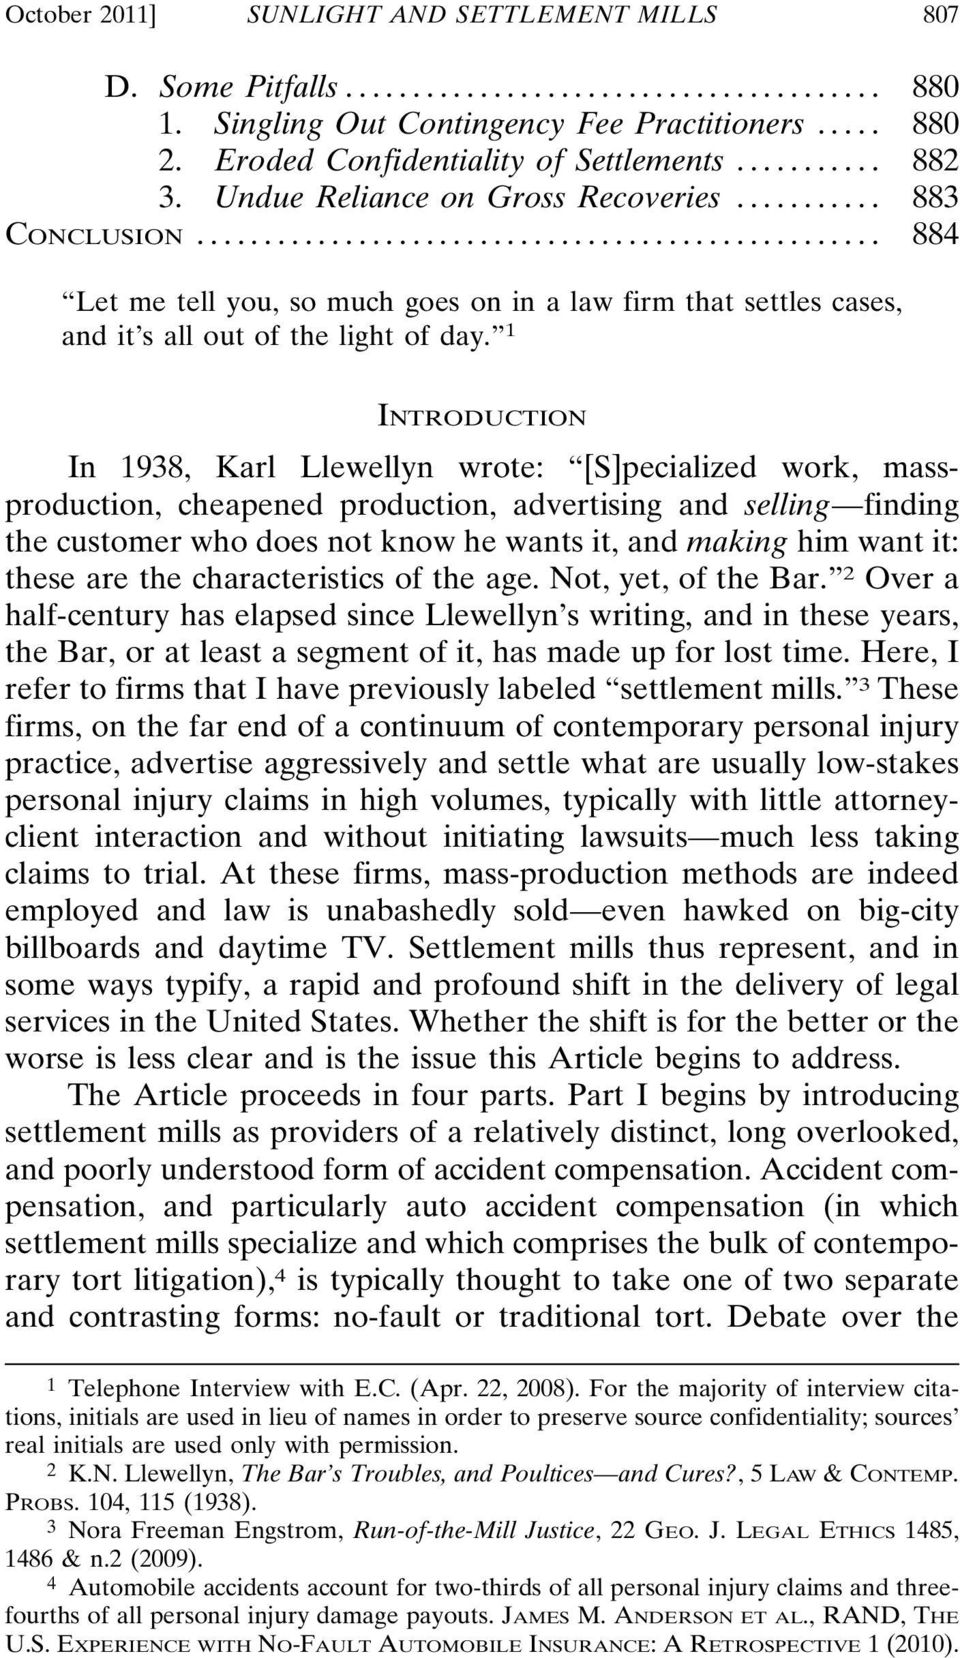 1 INTRODUCTION In 1938, Karl Llewellyn wrote: [S]pecialized work, massproduction, cheapened production, advertising and selling finding the customer who does not know he wants it, and making him want